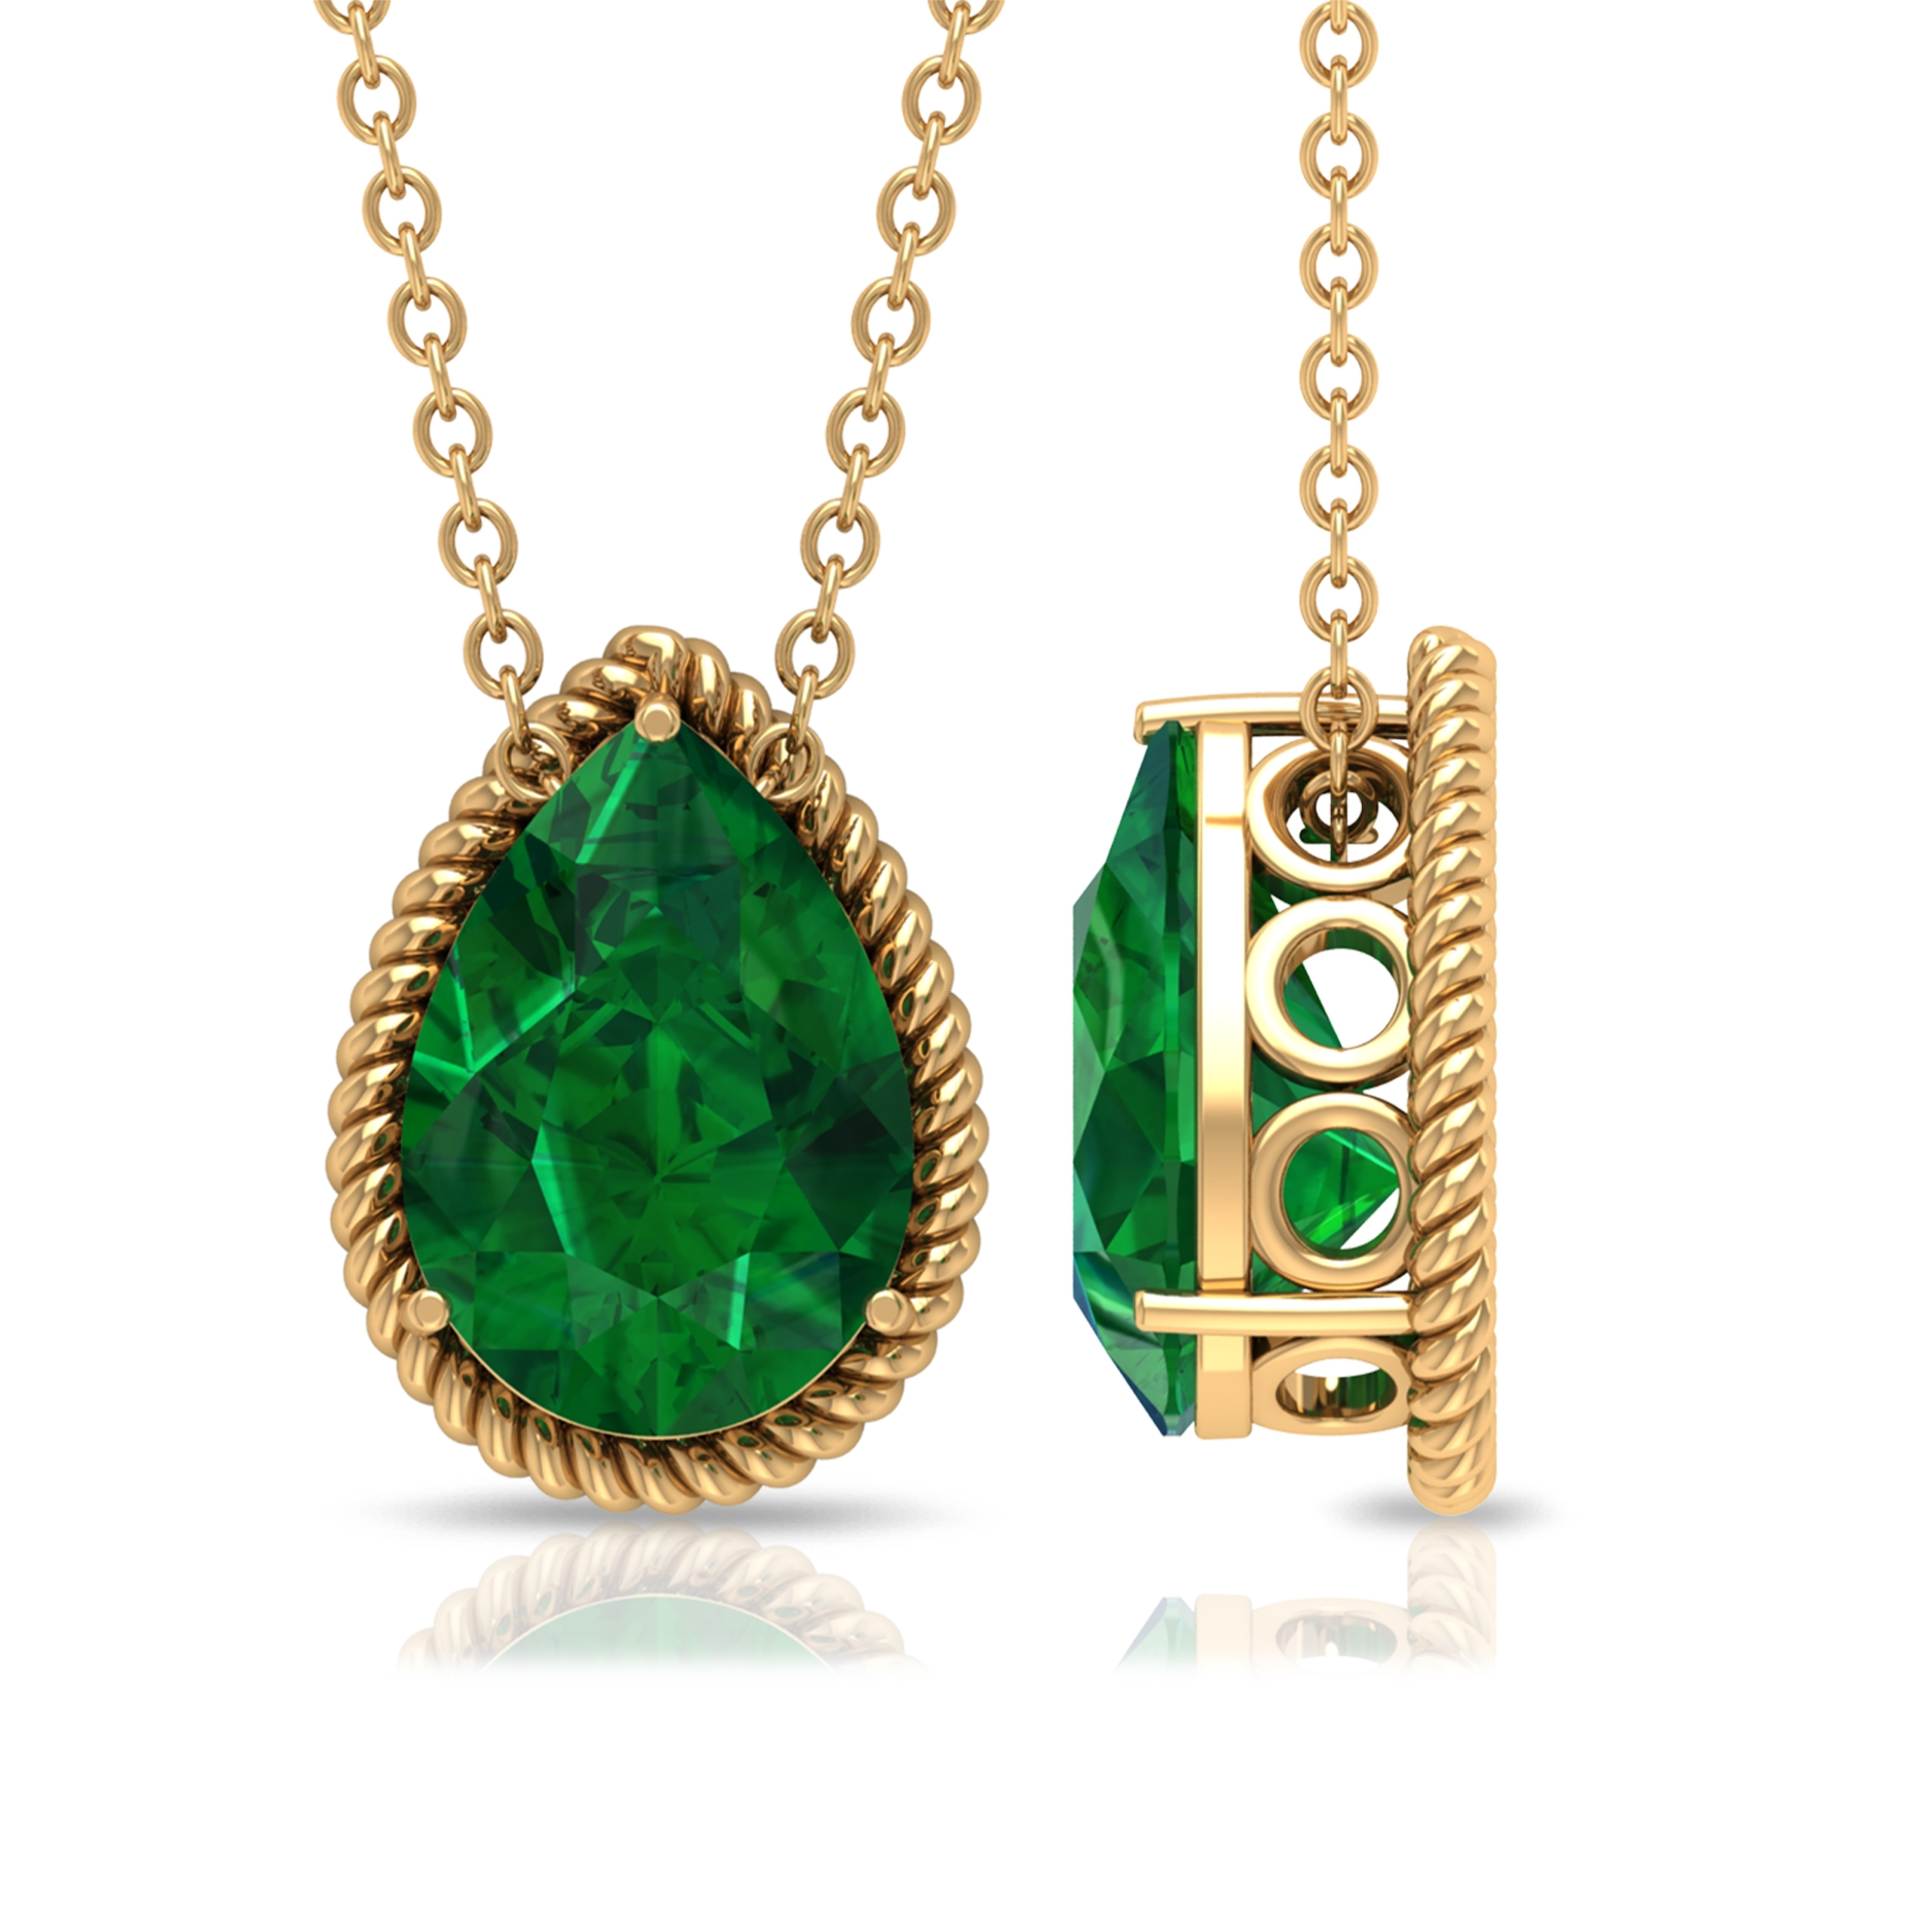 7X10 MM 3 Prong Set Pear Cut Emerald Solitaire Pendant with Rope Frame